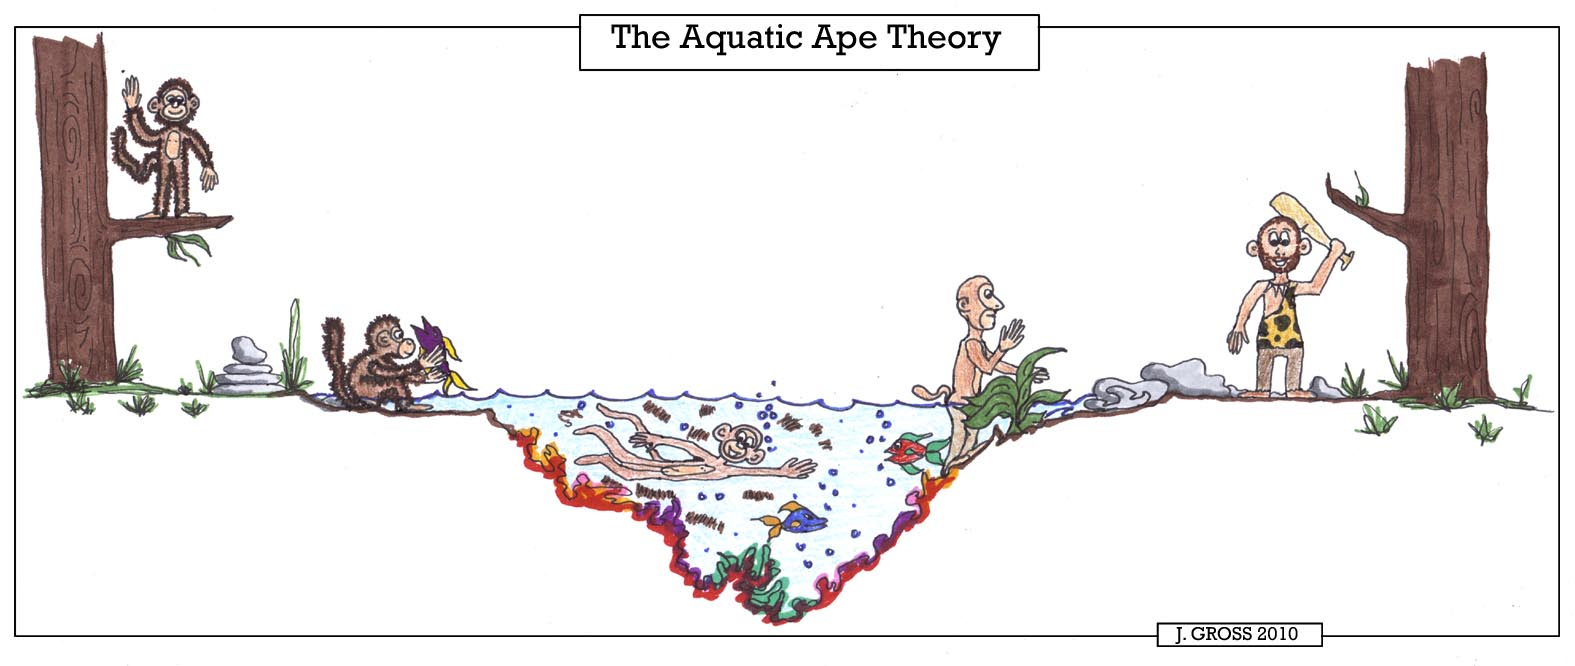 an analysis of the topic of the aquatic ape theory